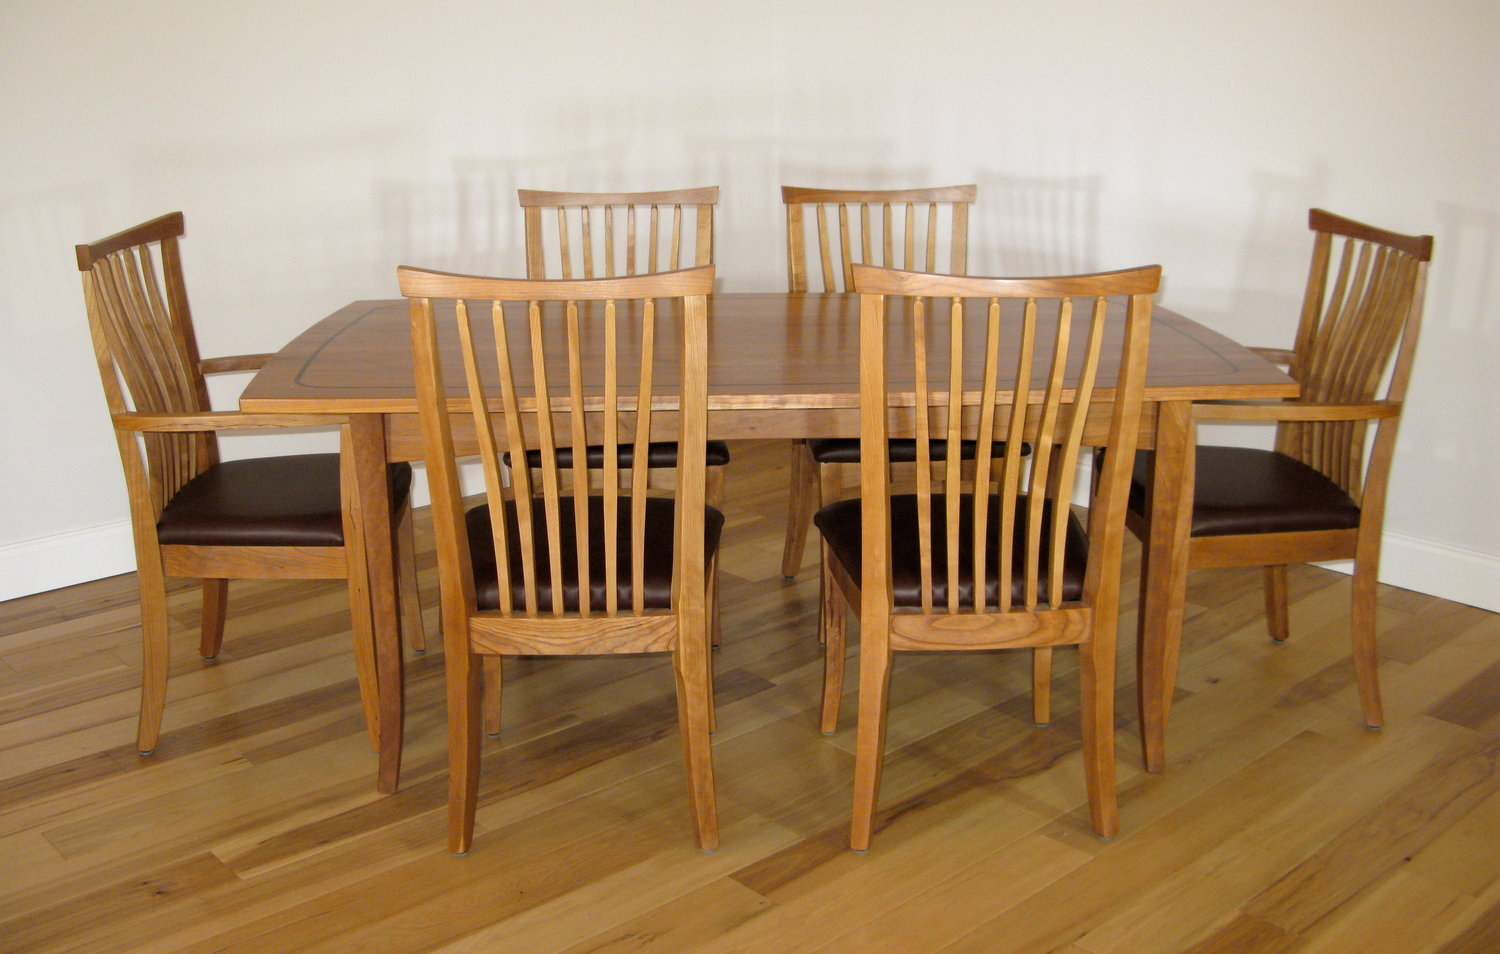 wooden dining furniture. Wooden Dining Table And Chairs Furniture A